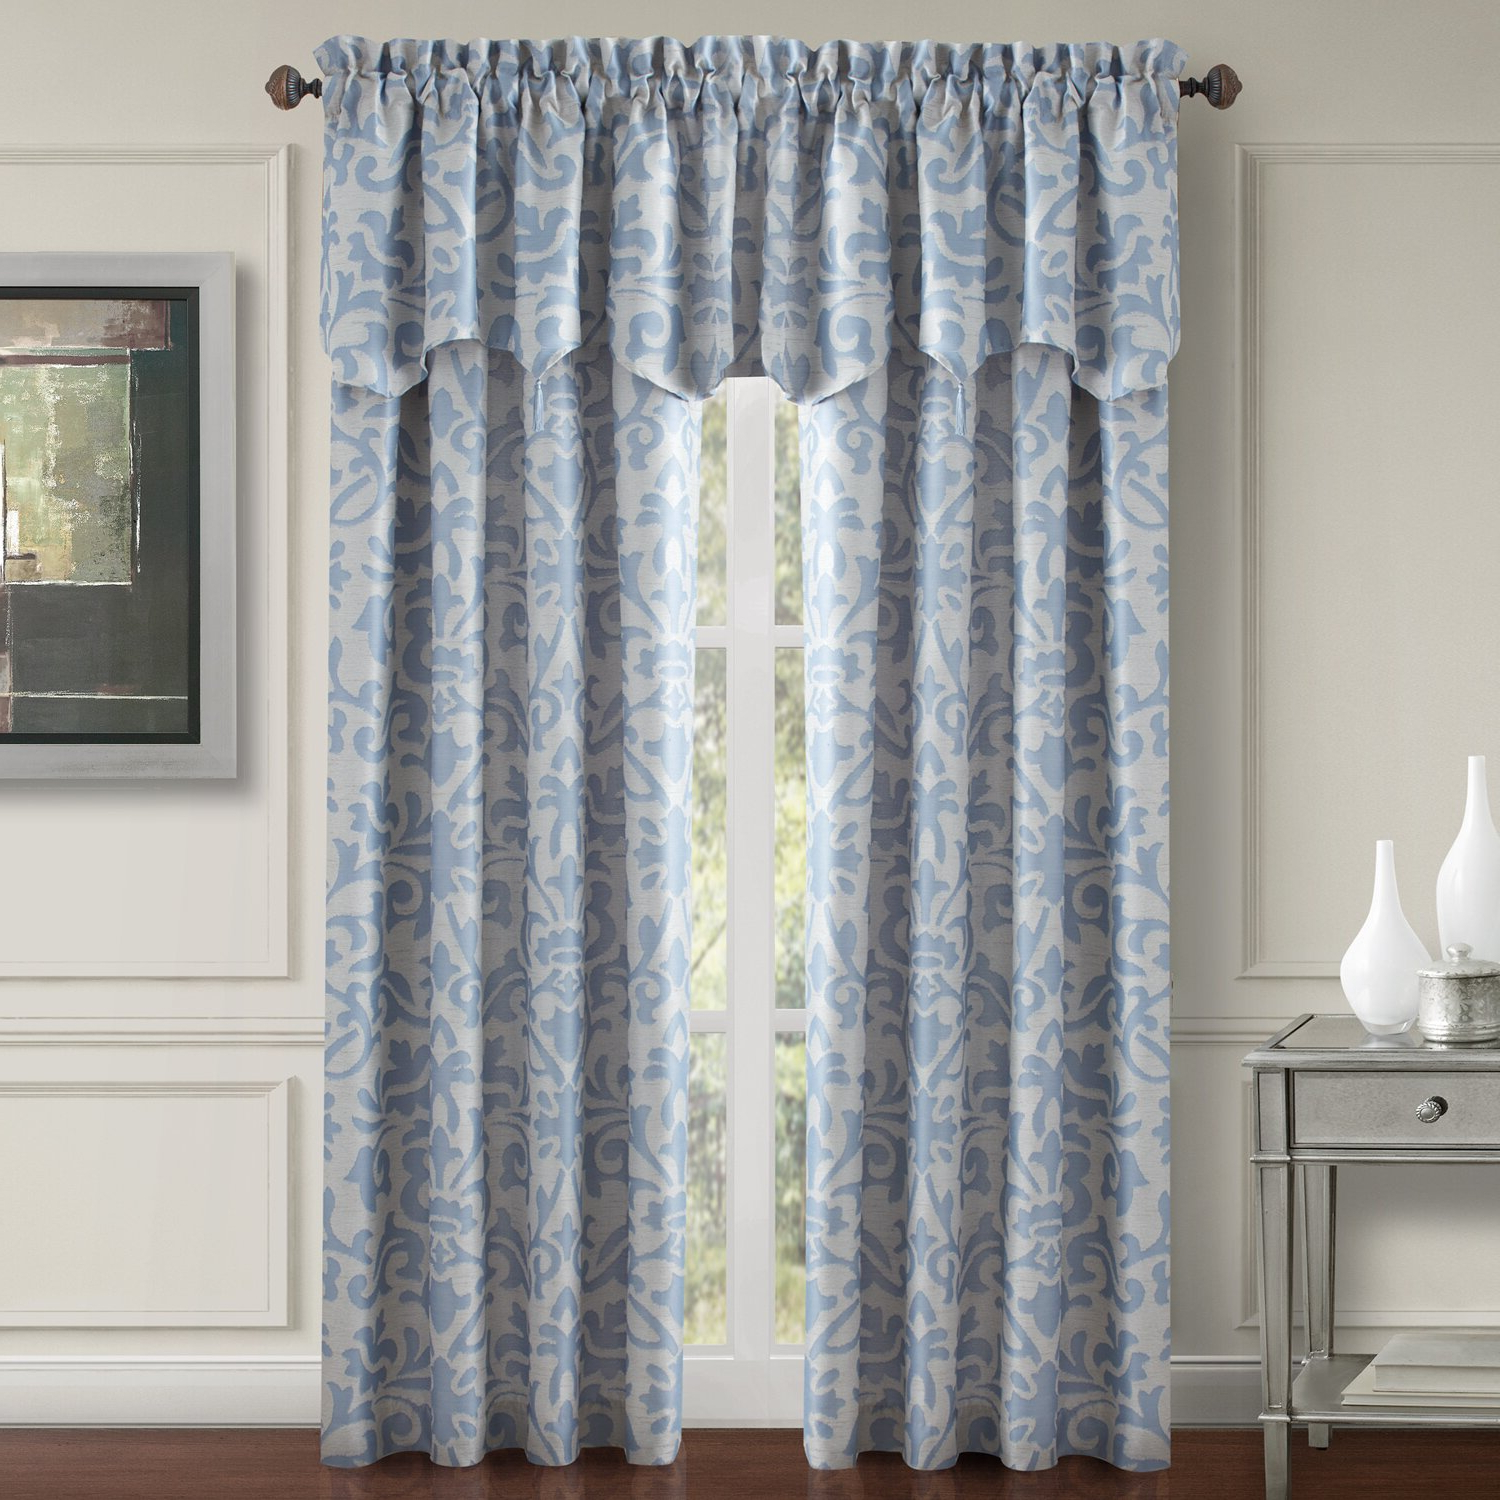 2021 Elrene Versailles Pleated Blackout Curtain Panels With Single Curtain (View 17 of 20)